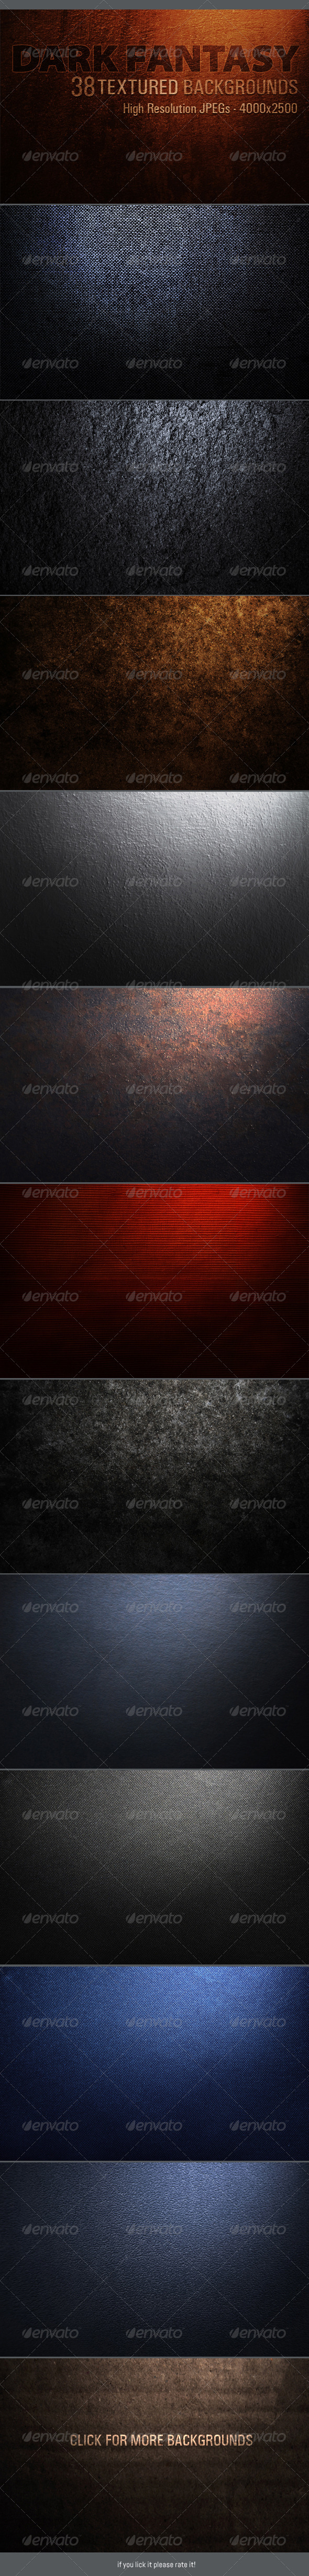 38 Textured Backgrounds